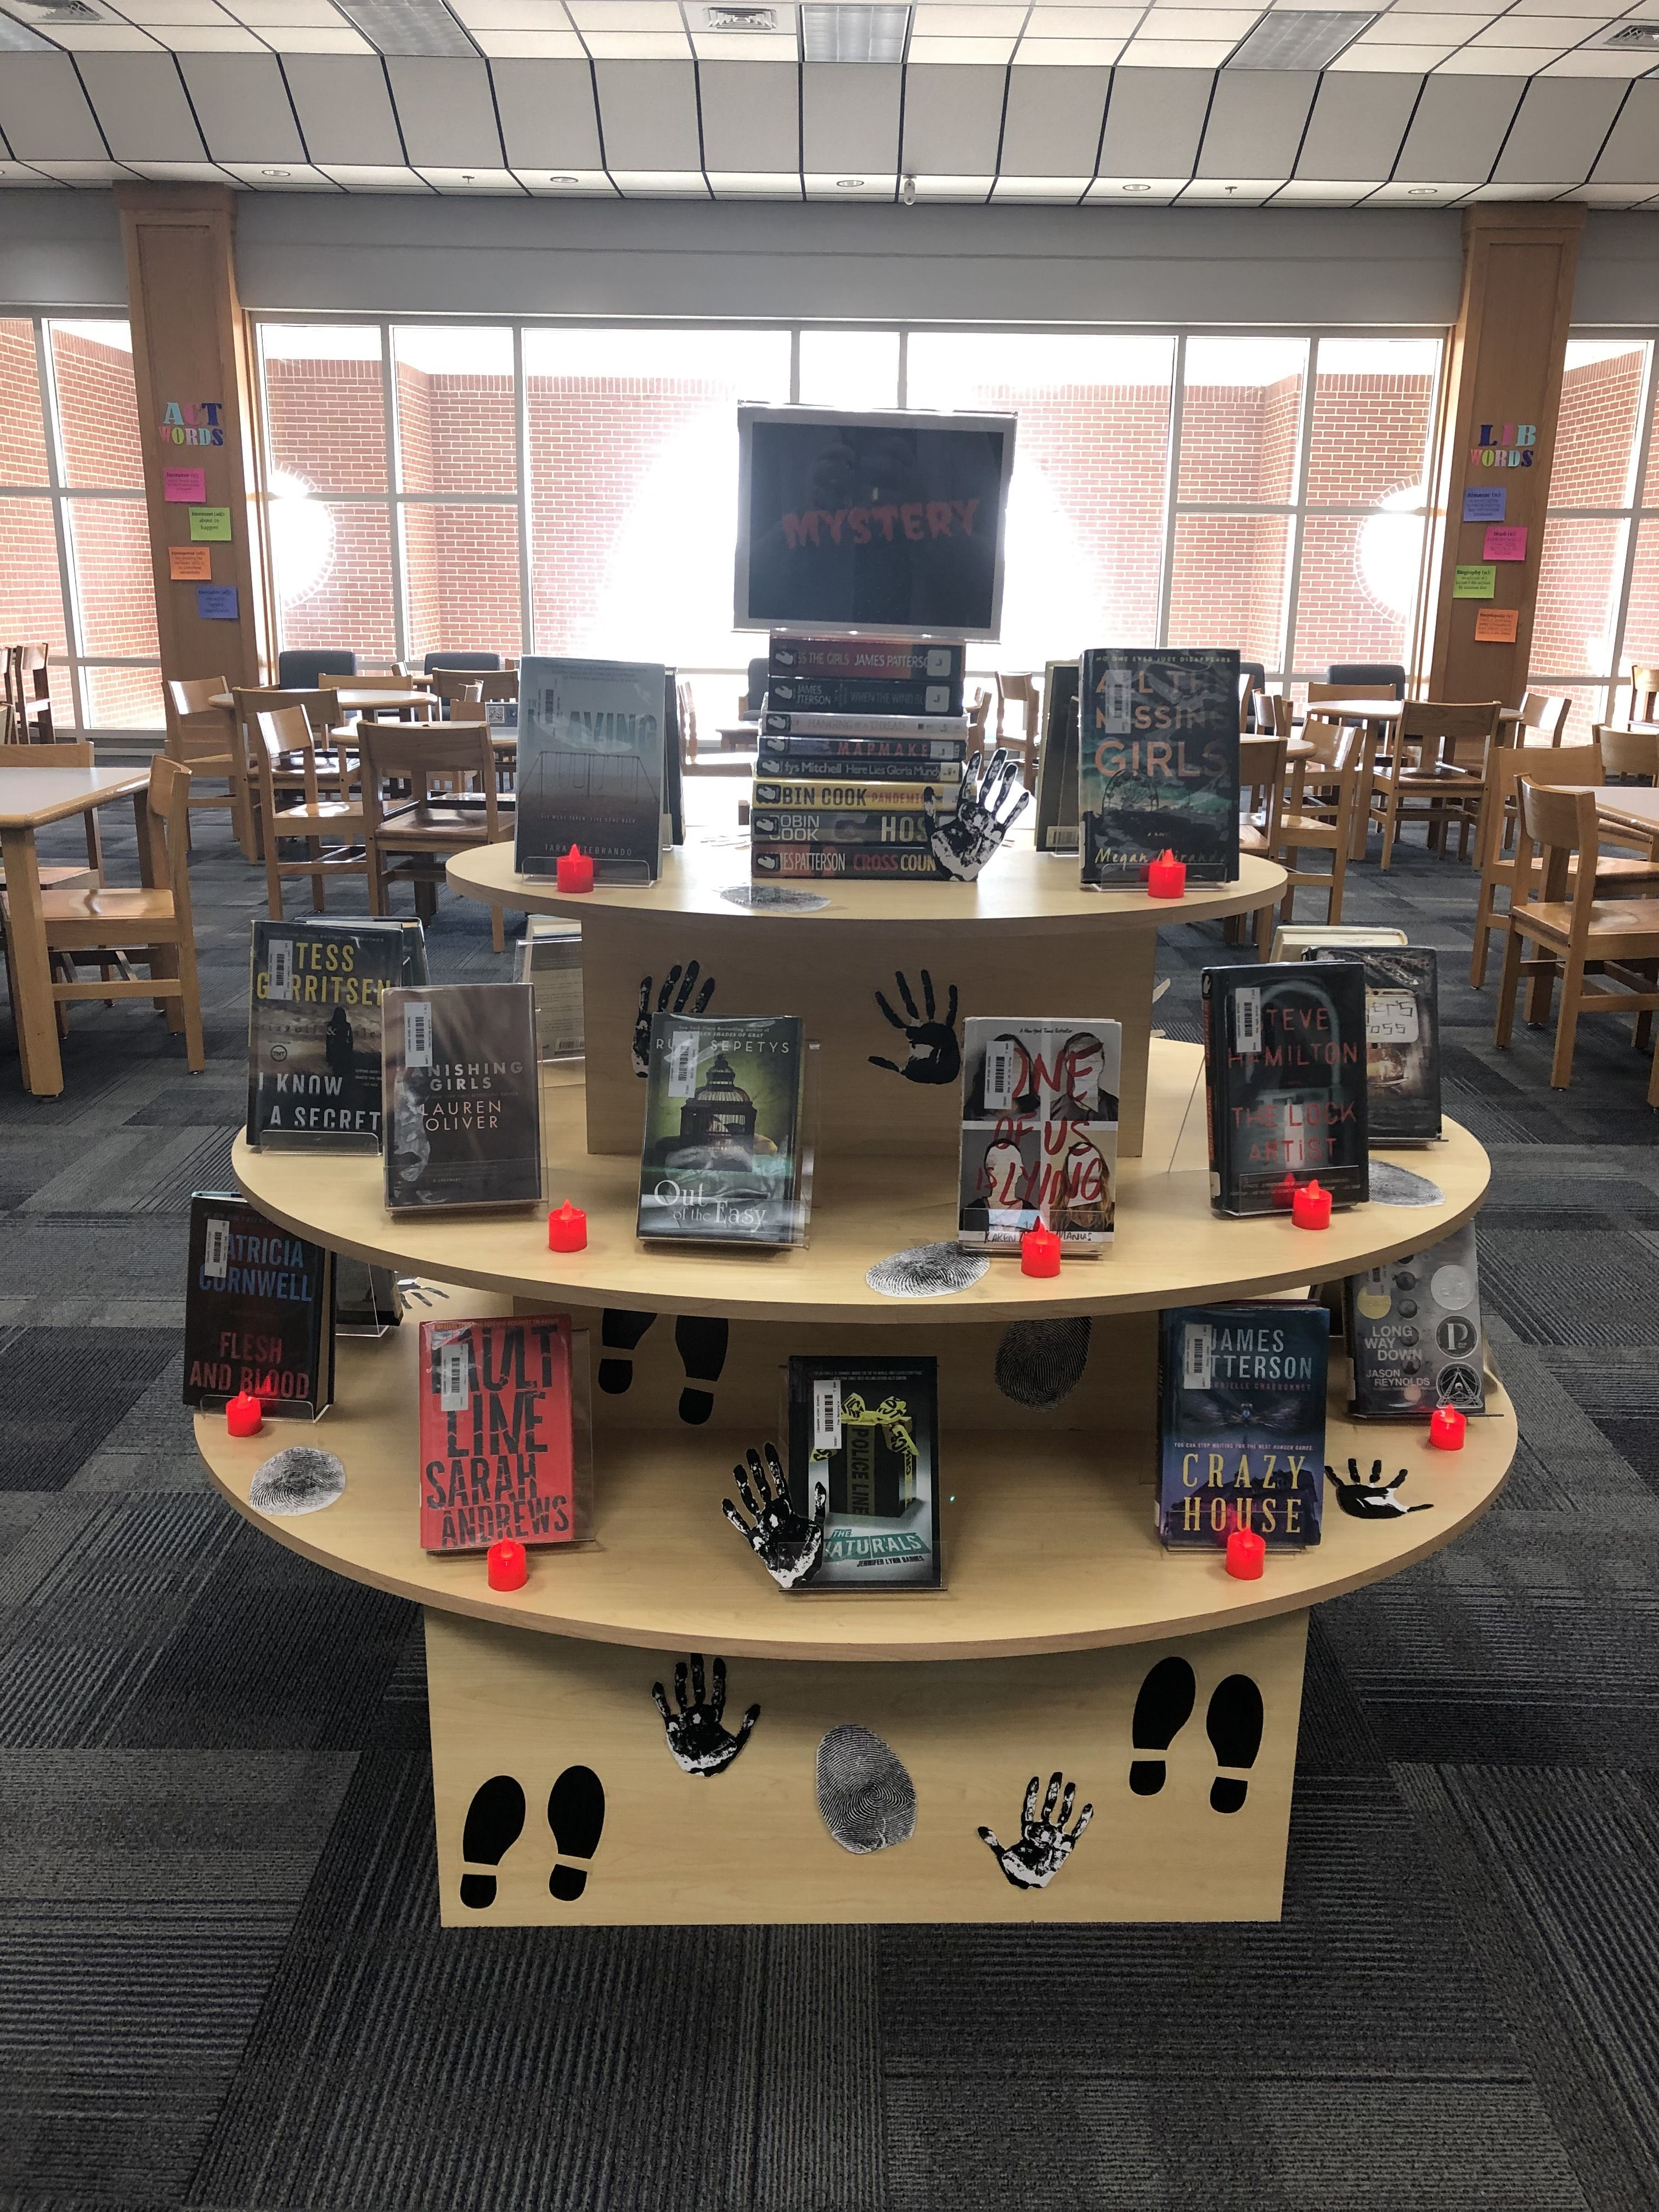 Pin by Whitney Johnson on LHS Library Displays in 2020